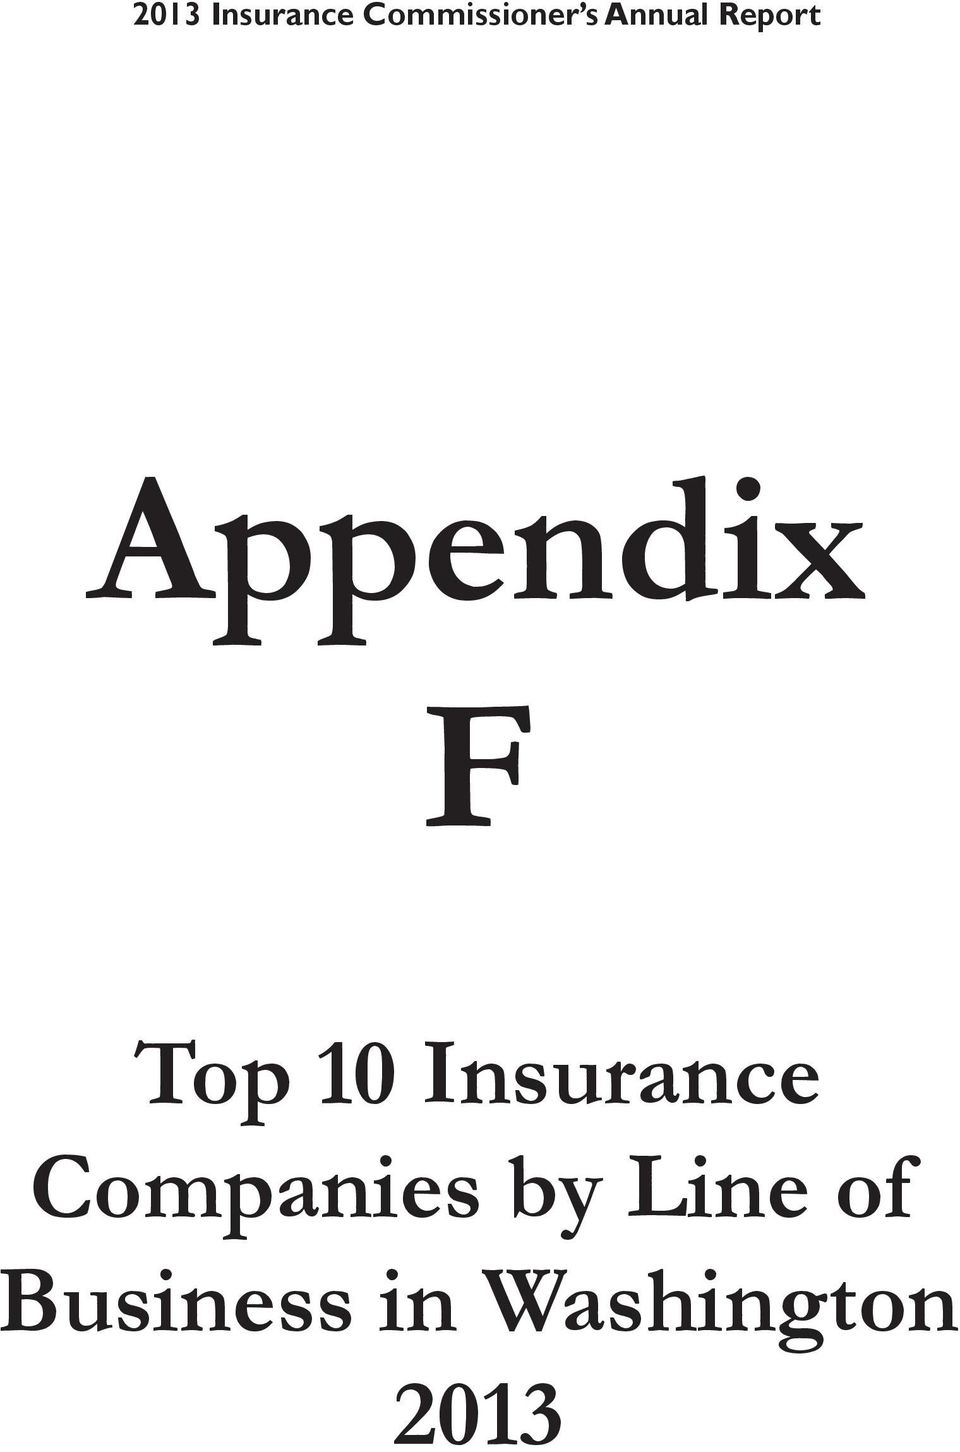 Top 10 Insurance by Line of